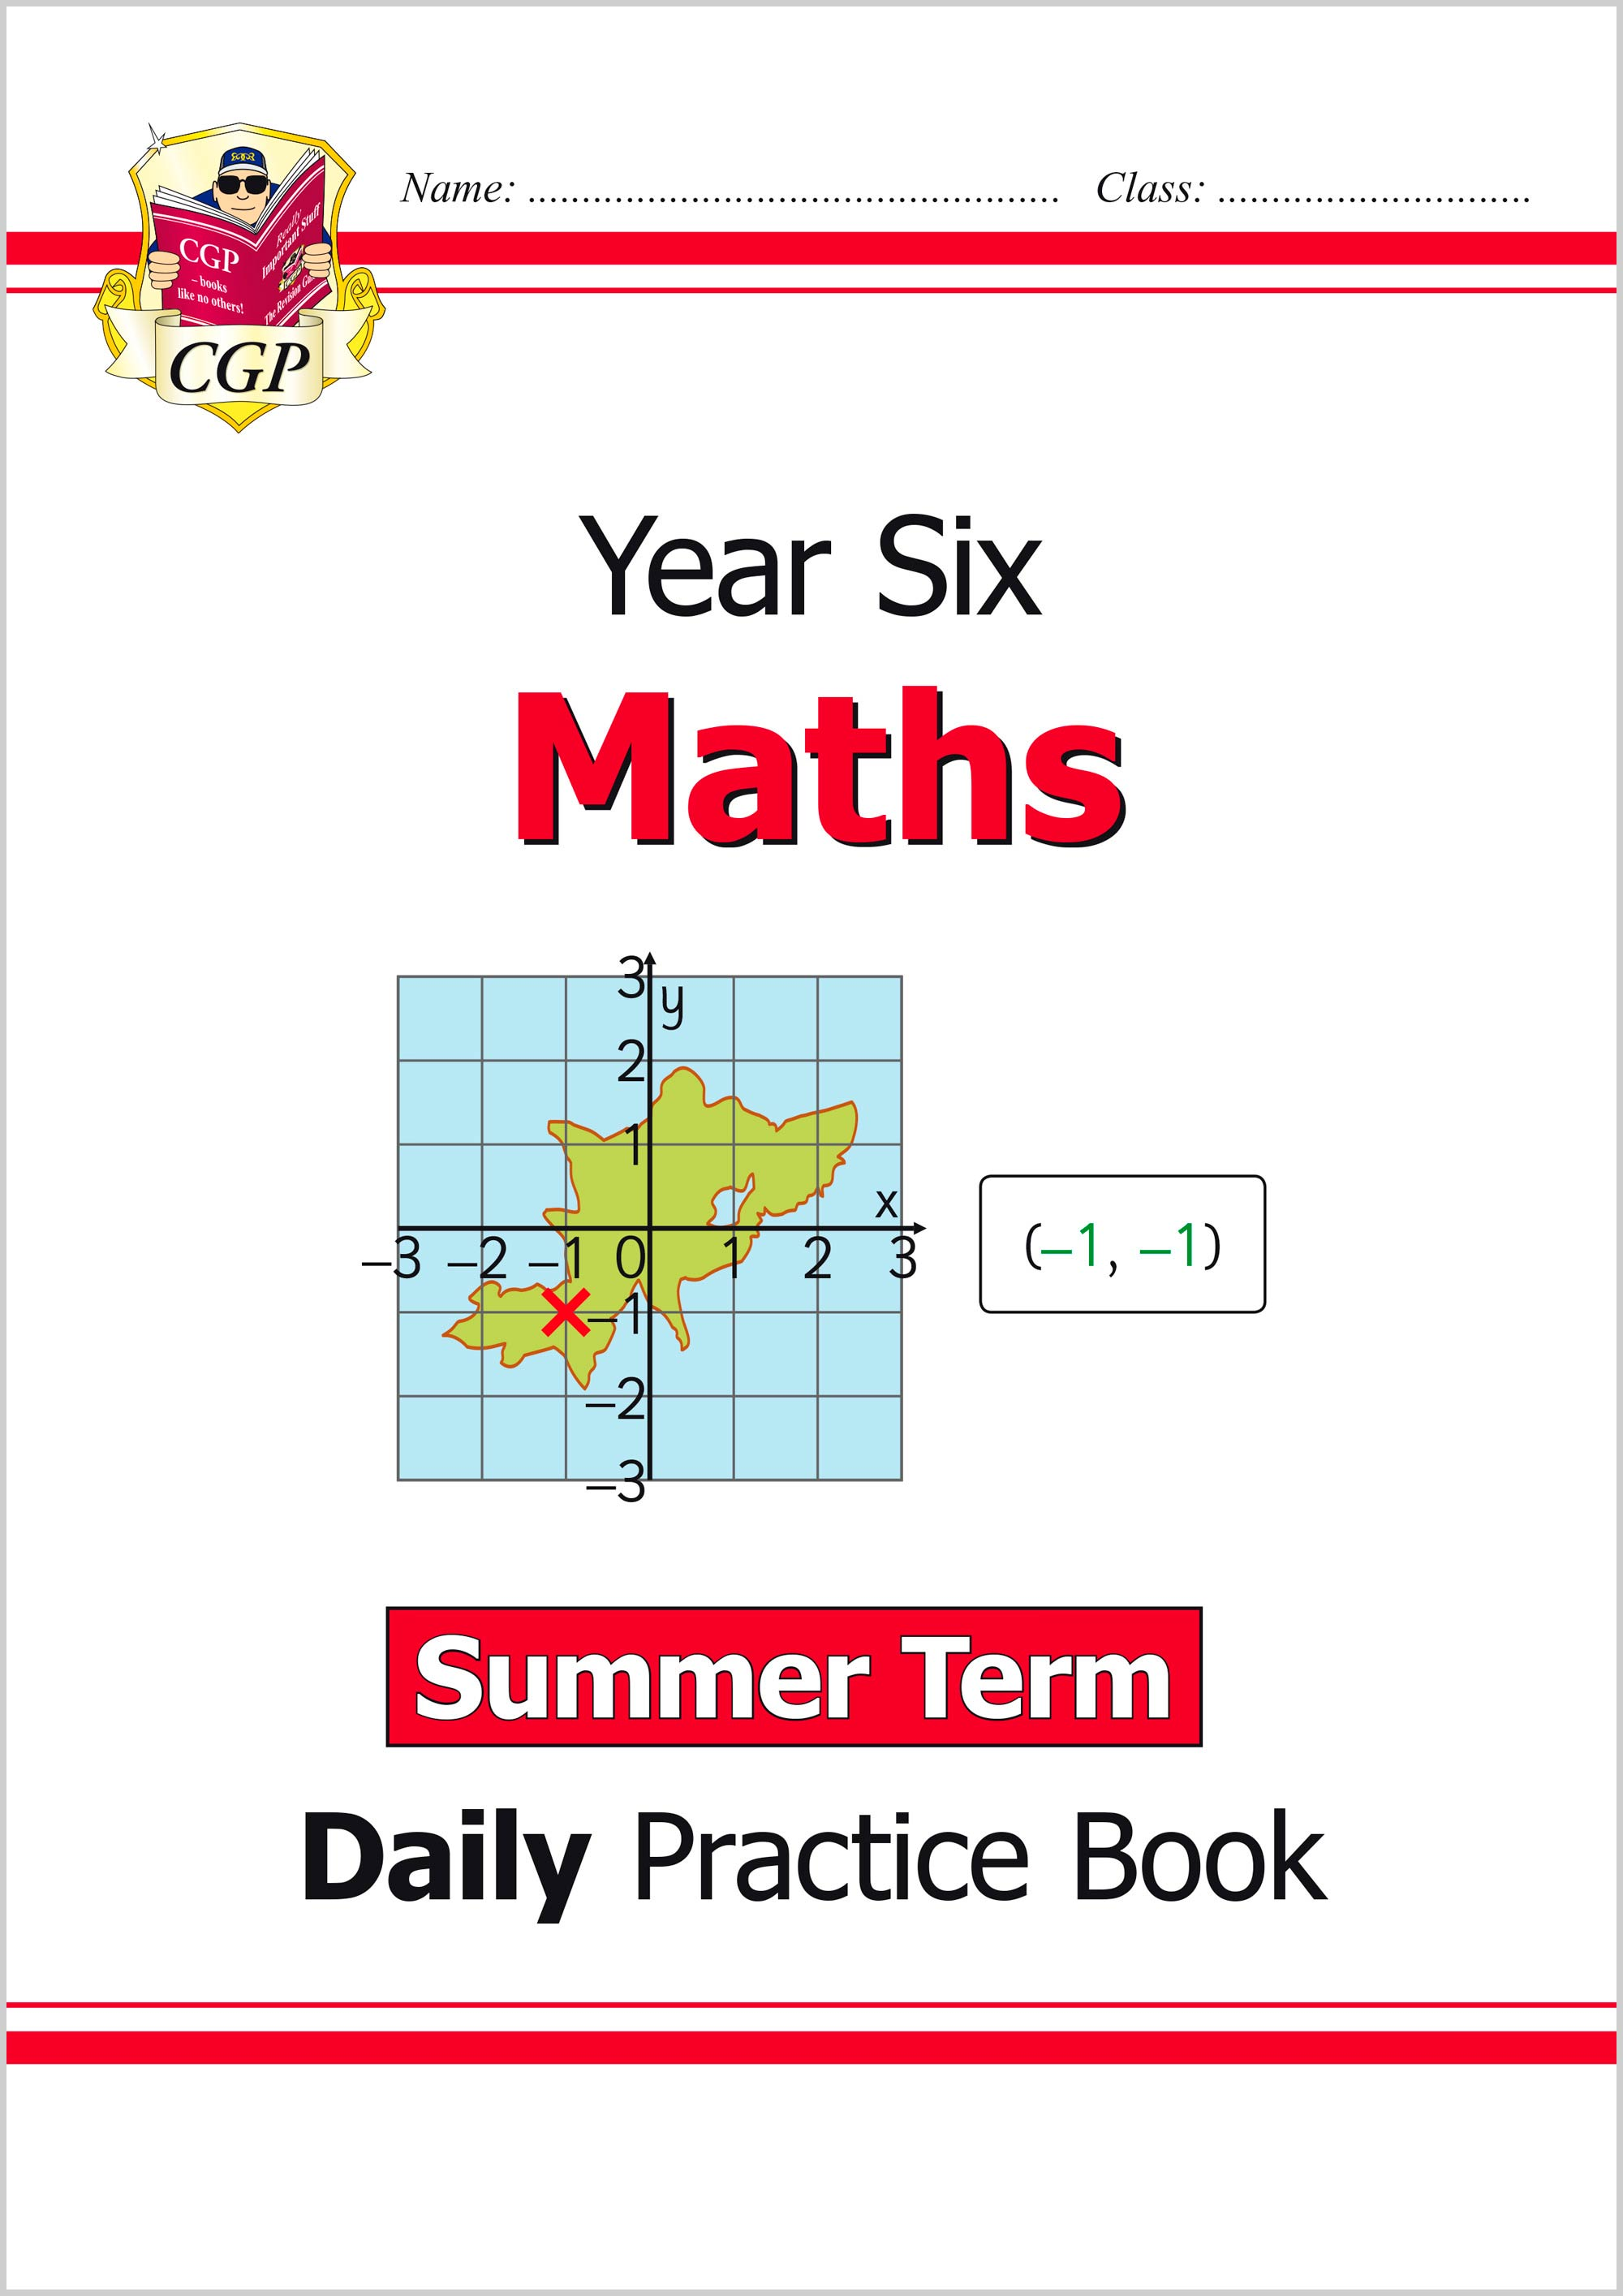 M6WSU21 - New KS2 Maths Daily Practice Book: Year 6 - Summer Term